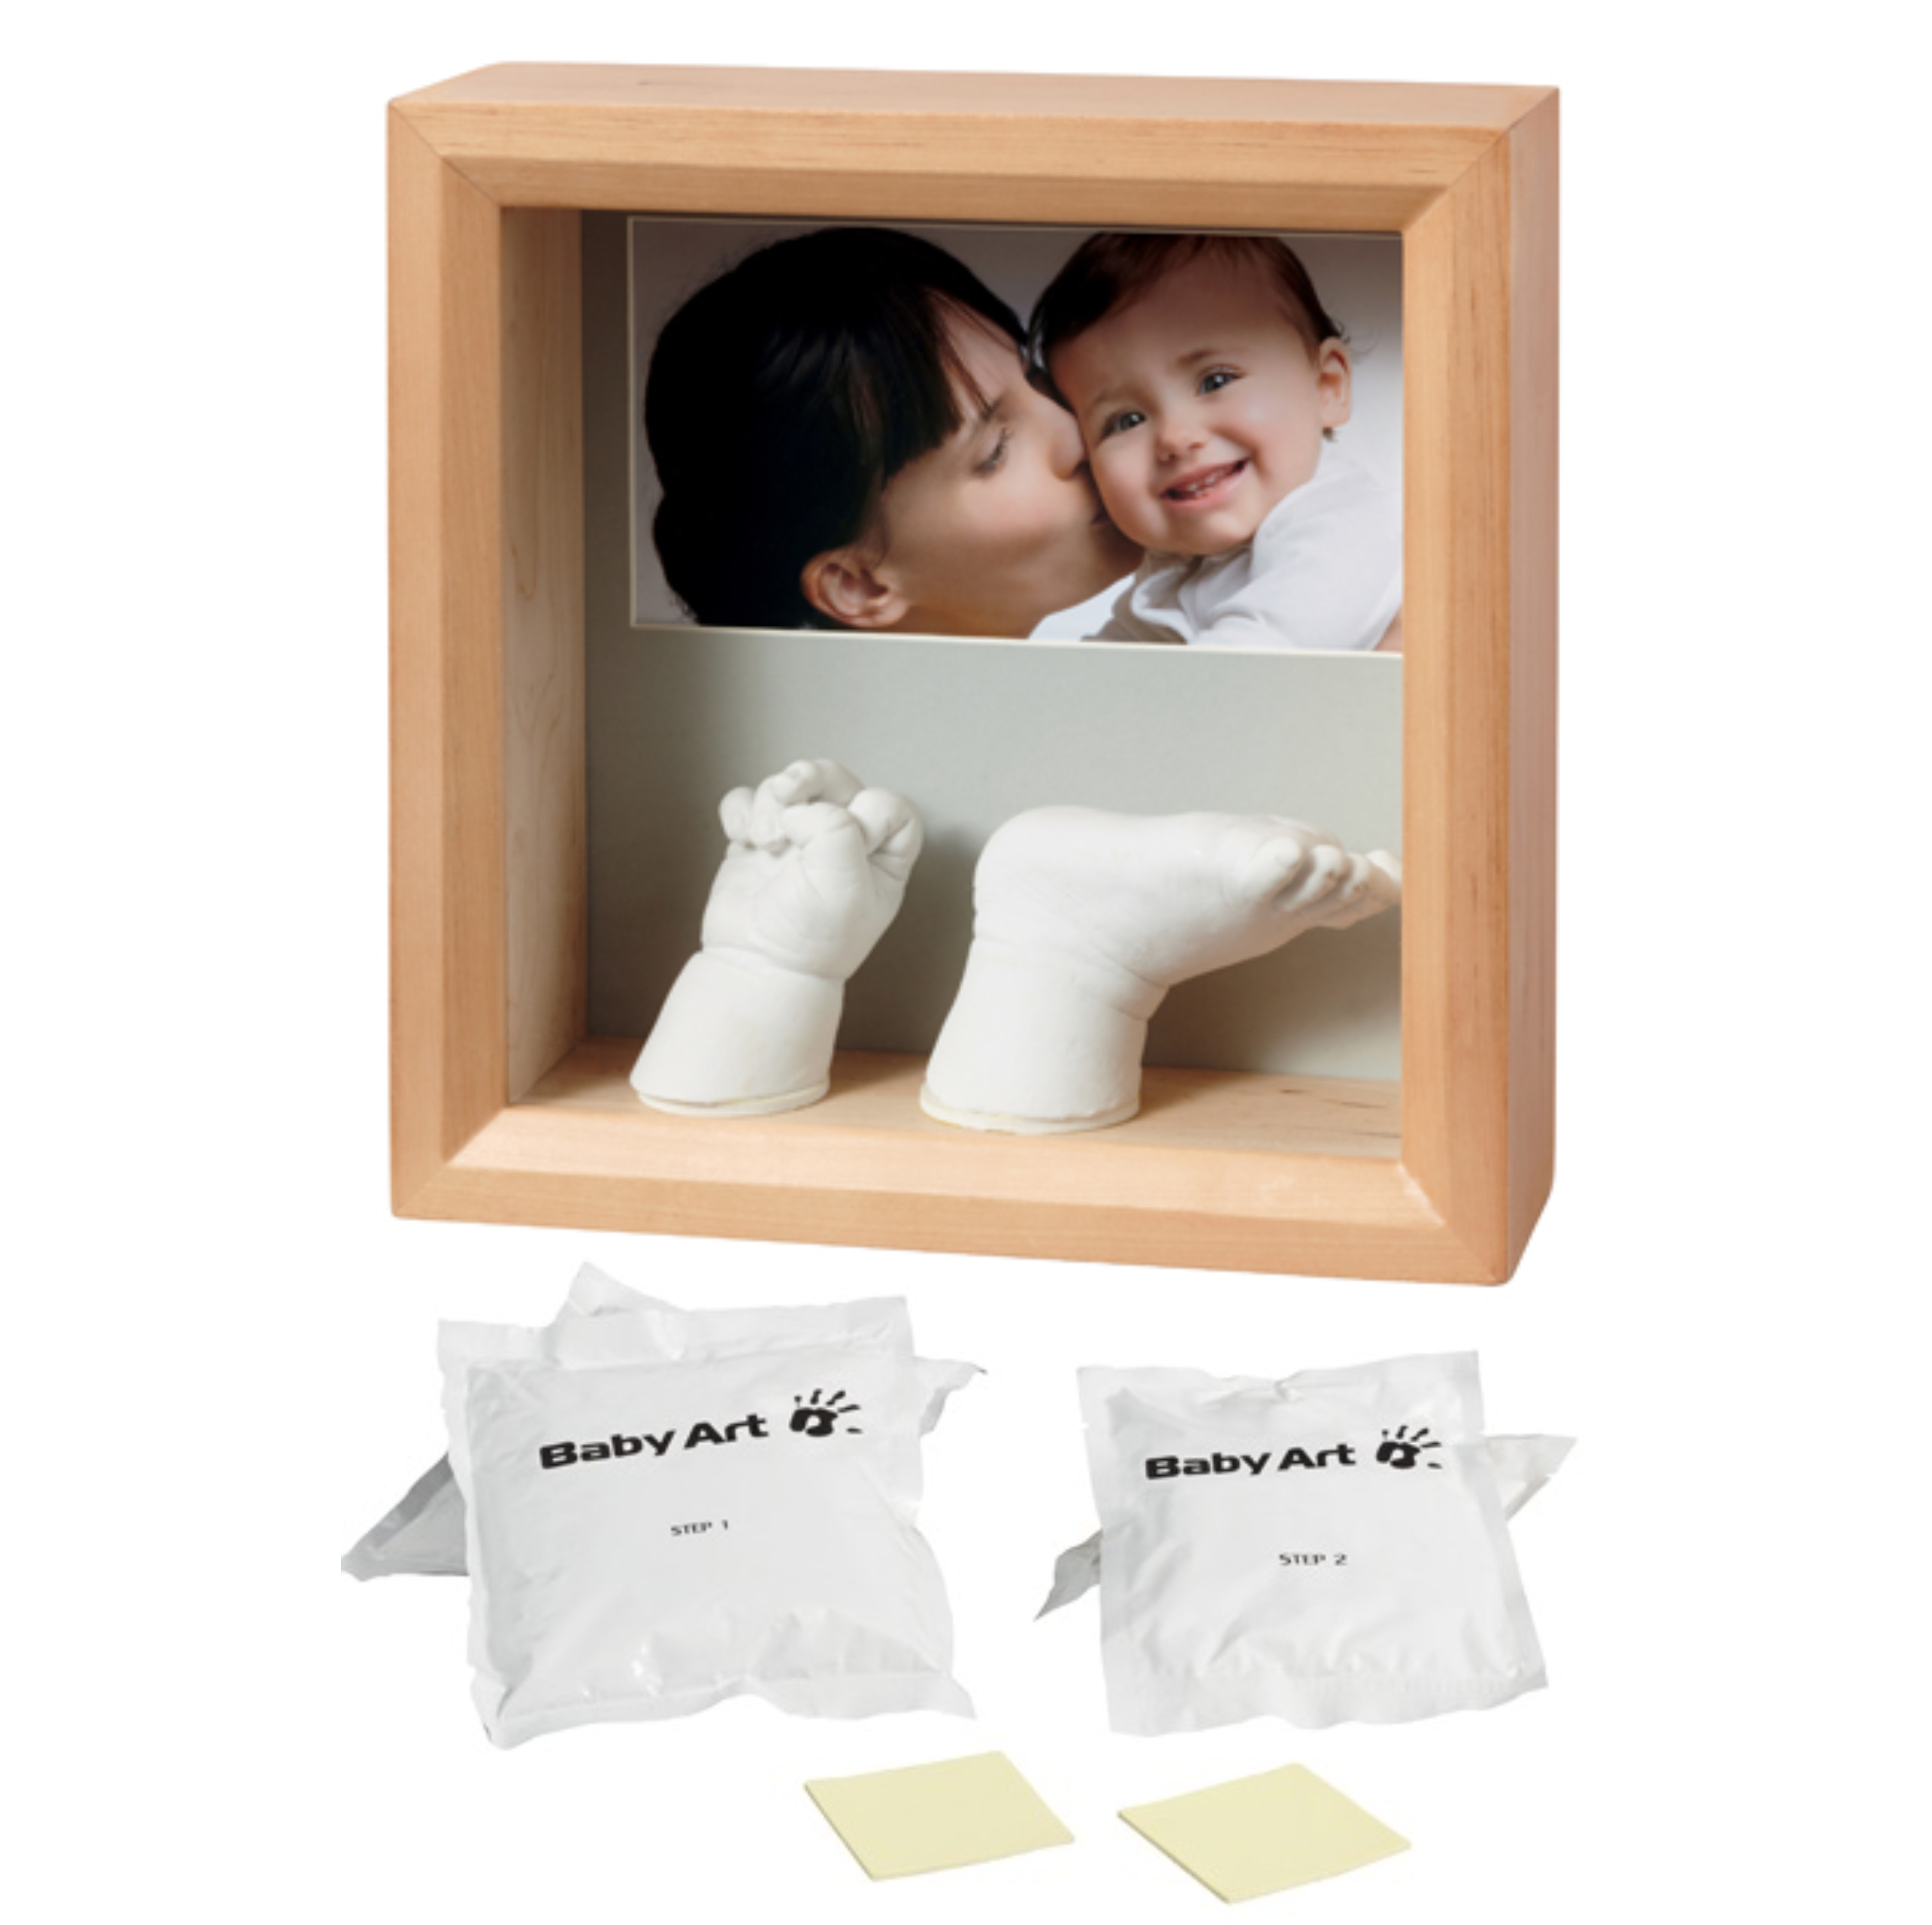 Baby Art My Baby Sculpture Honey Frame|Kid's Hand/Foot Reminder|3D Mould|0-3y|